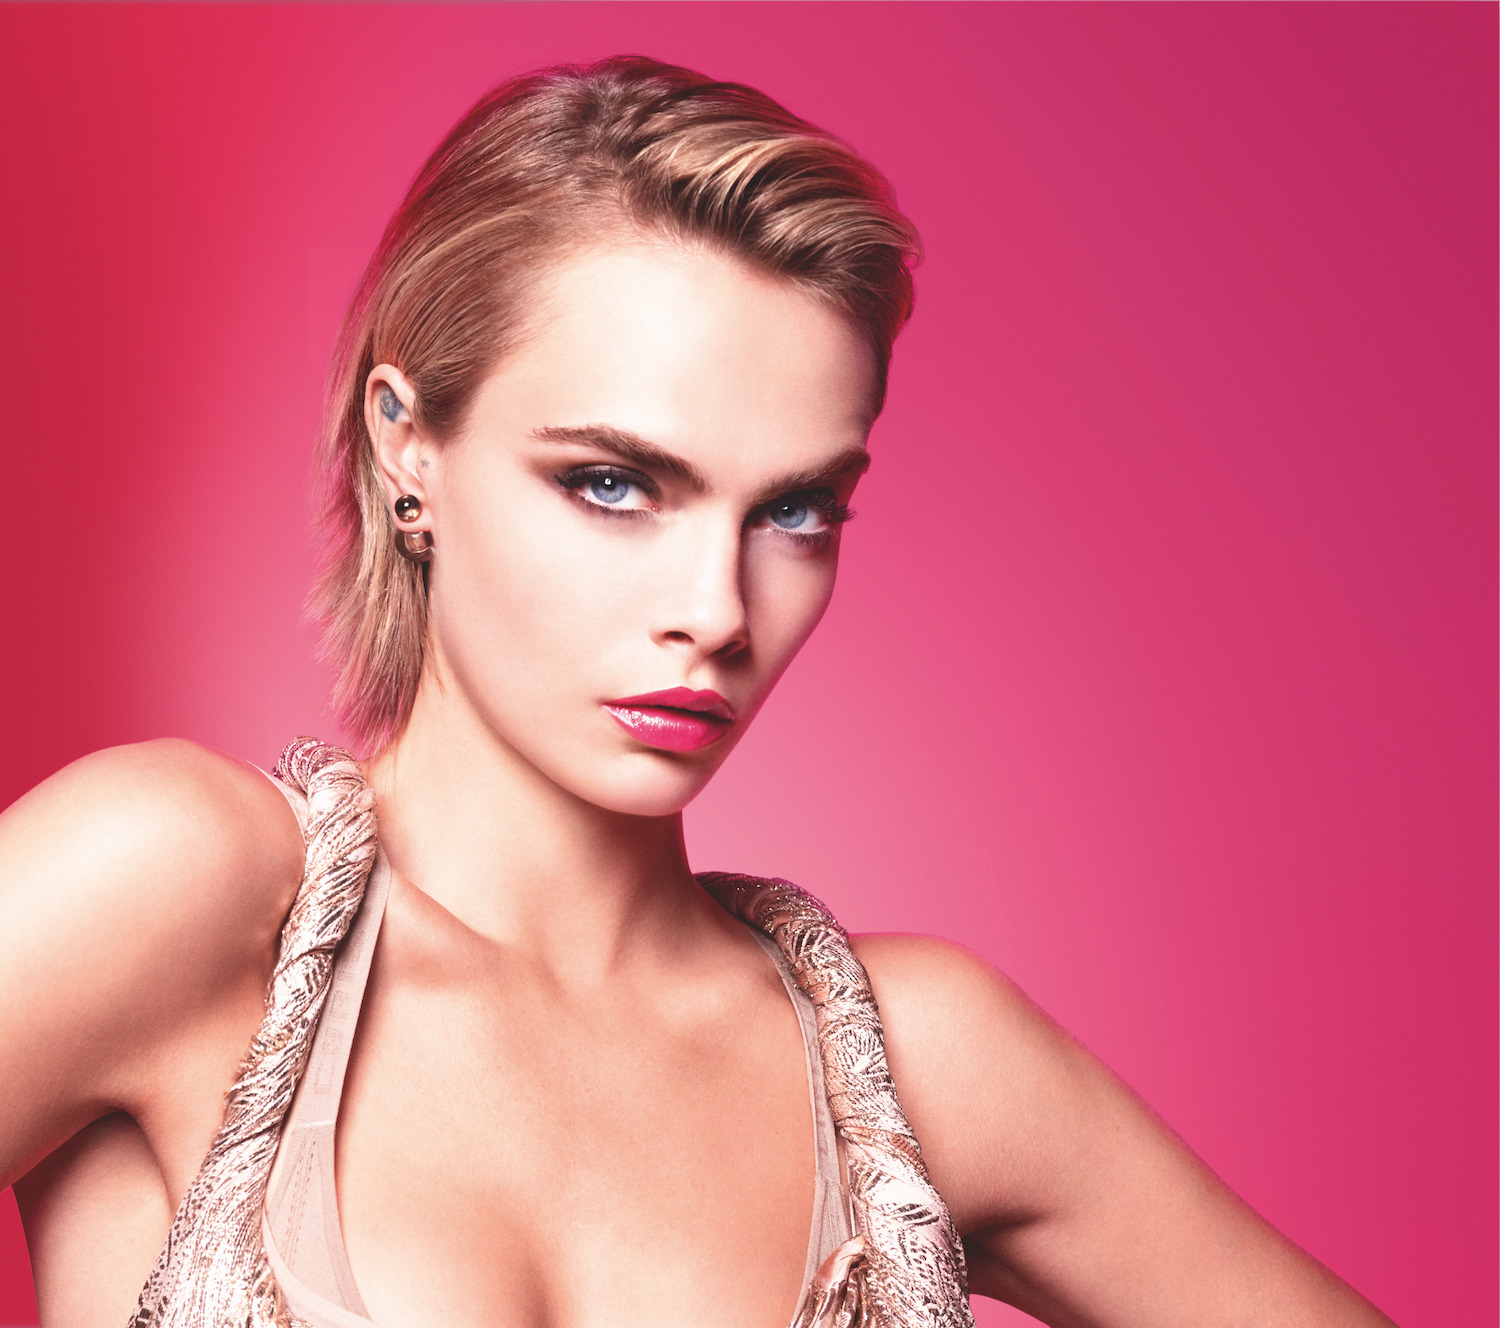 Cara Delevingne Dior Addict Stellar Shine lipstick collection